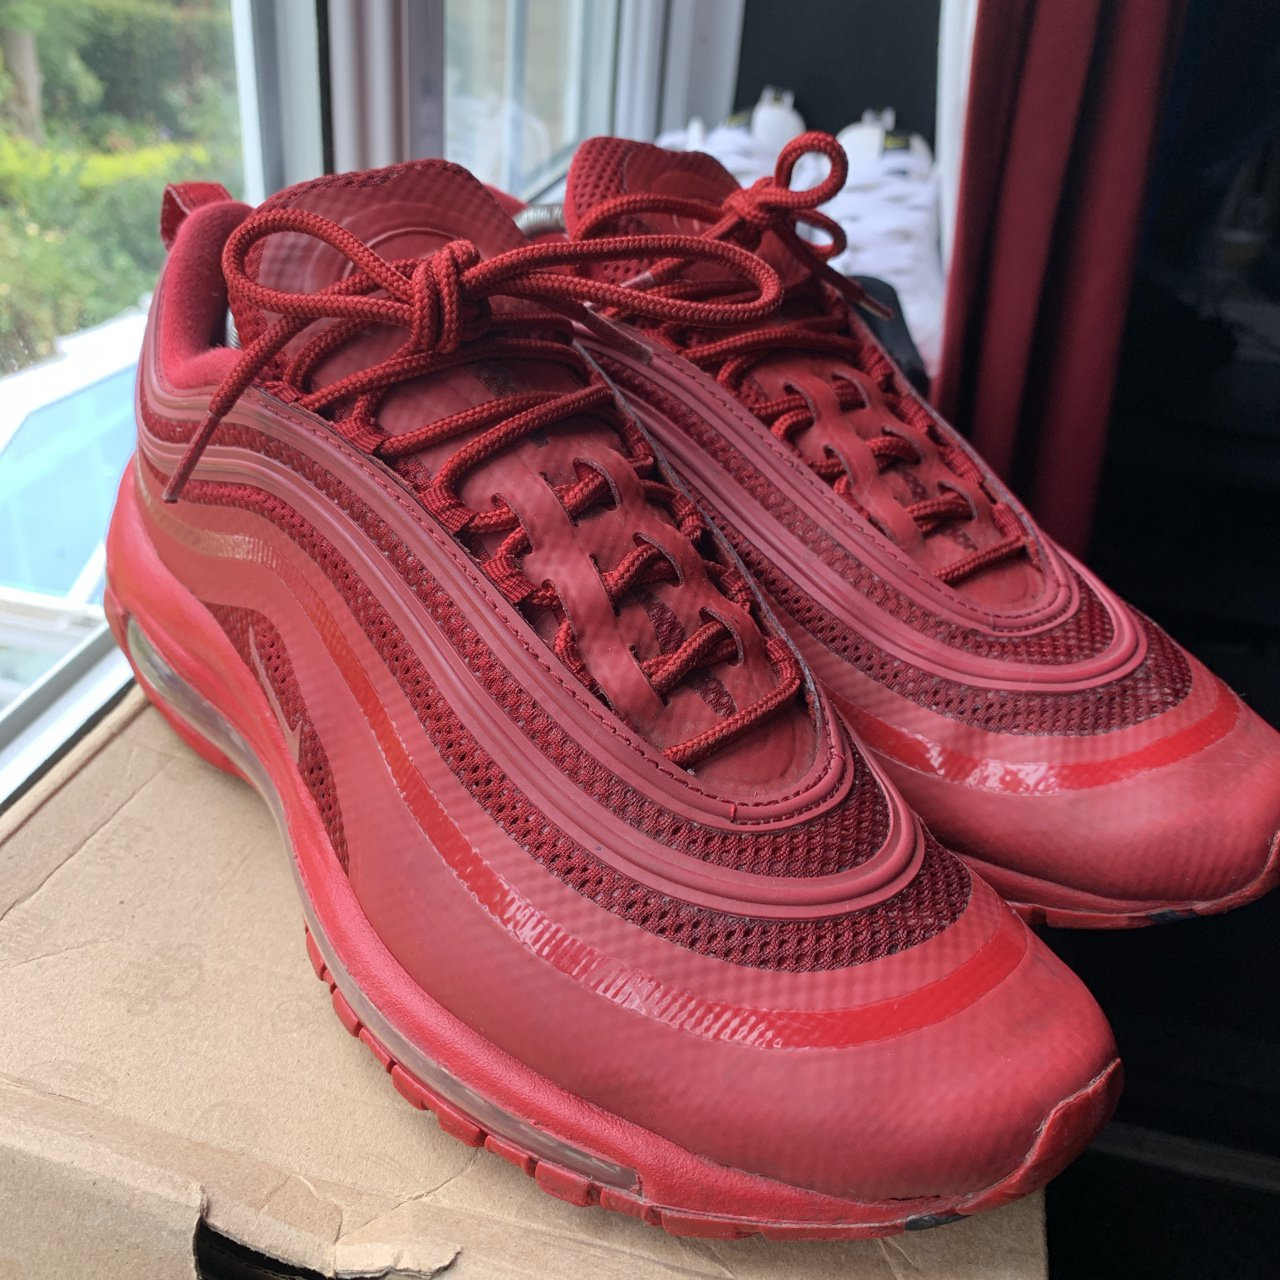 Nike Air max 97 Hyperfuse Gym Red, 910 condition, Depop